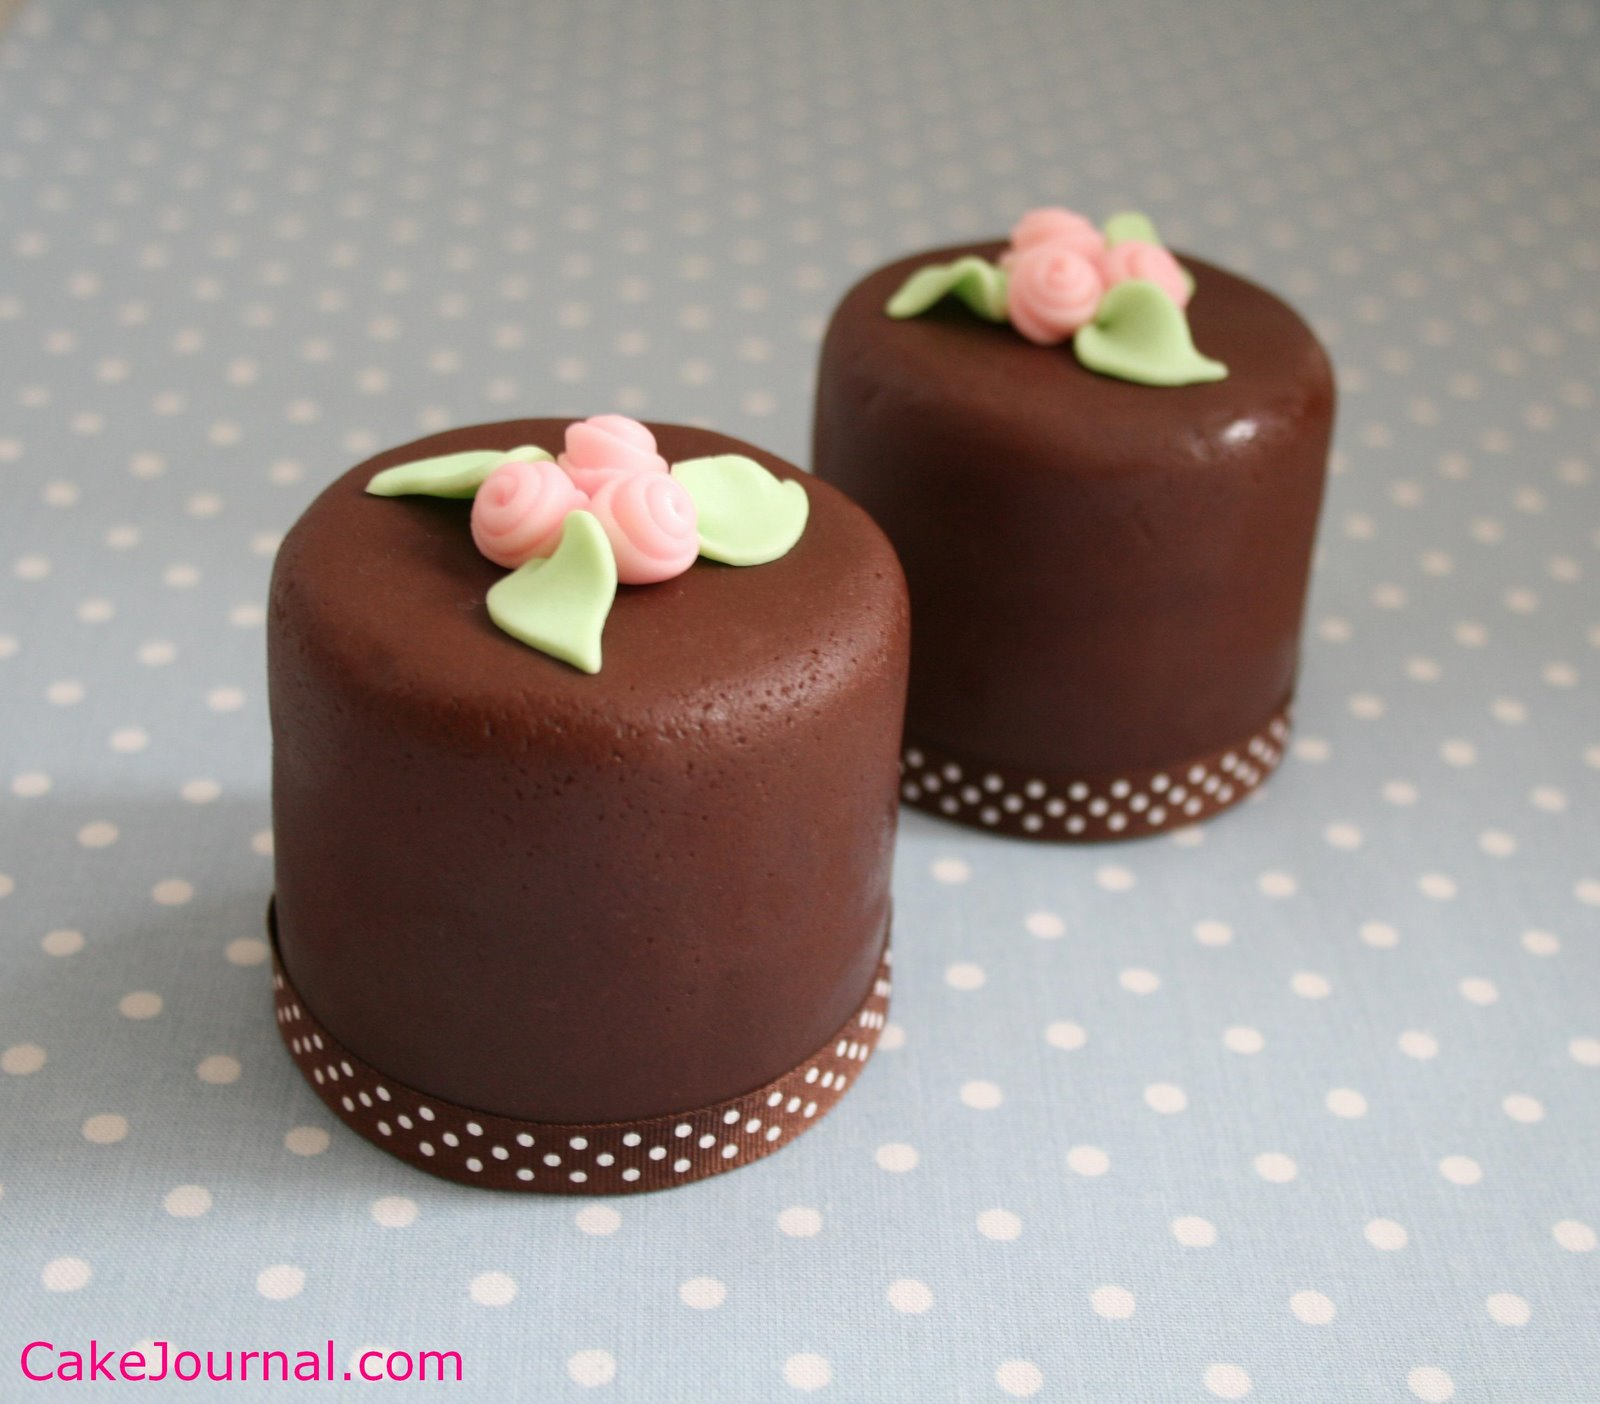 Mini Cake Recipes With Pictures : Embrace Couture: My brain is screaming for a mini cake...